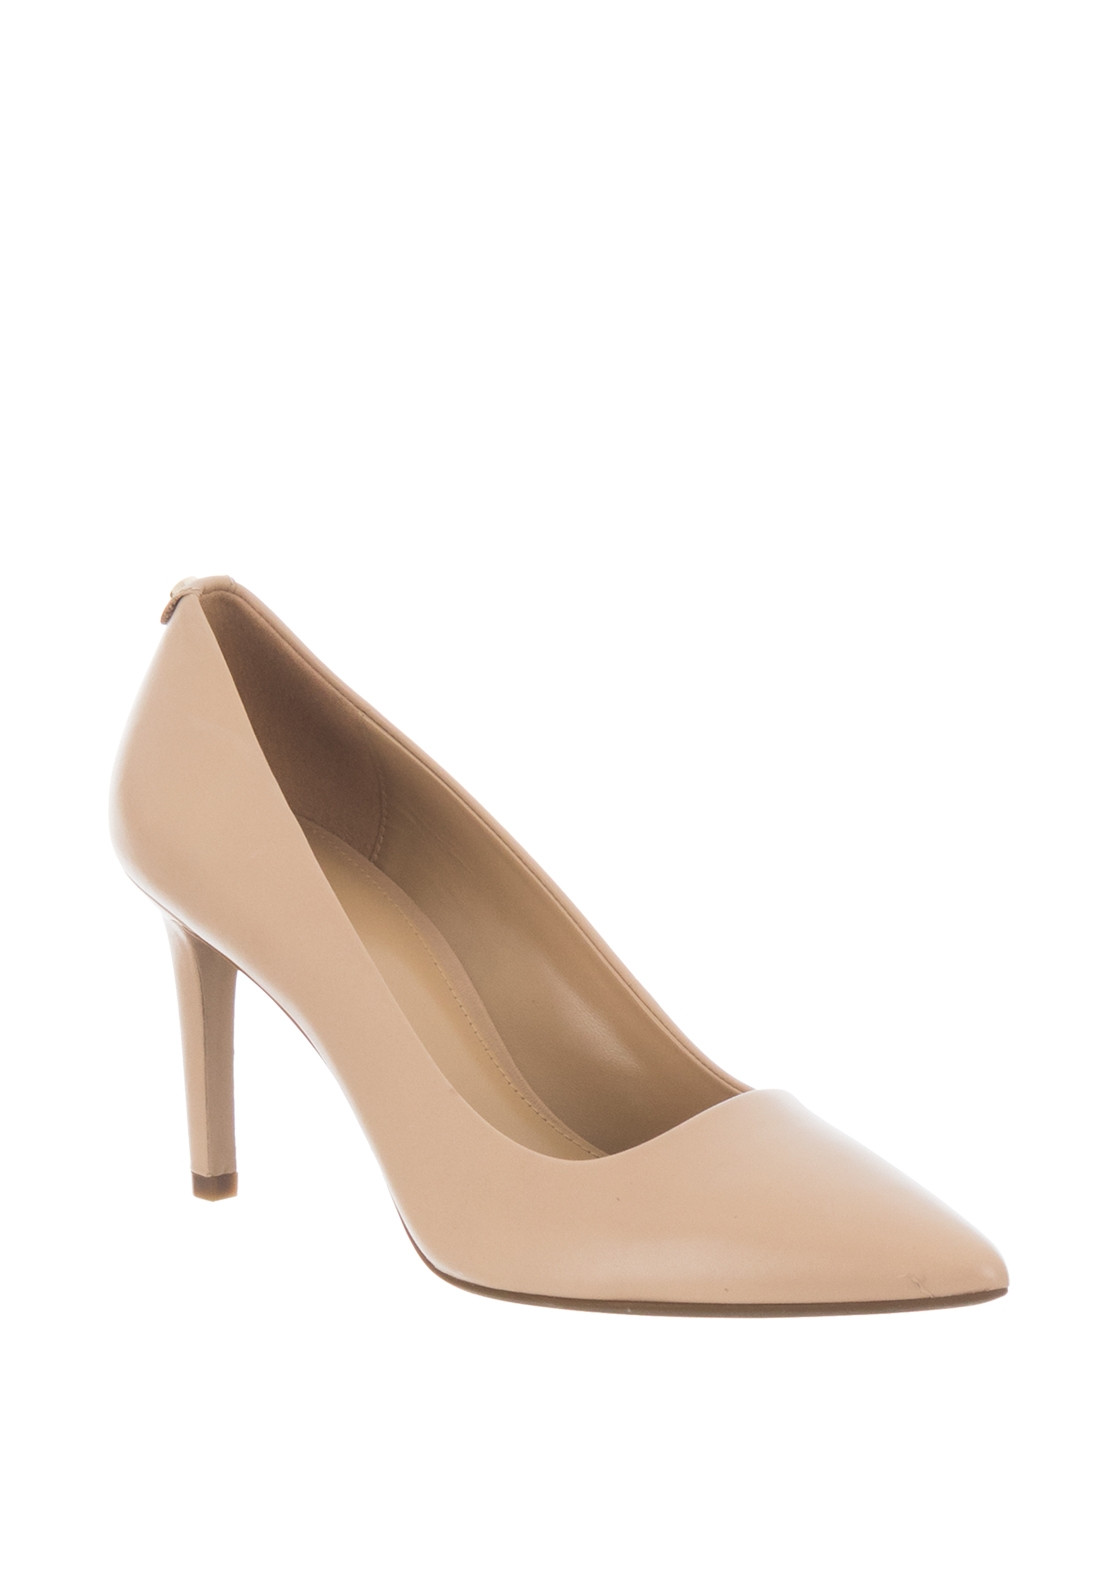 MICHAEL Michael Kors Womens Dorothy Court Shoes, Nude